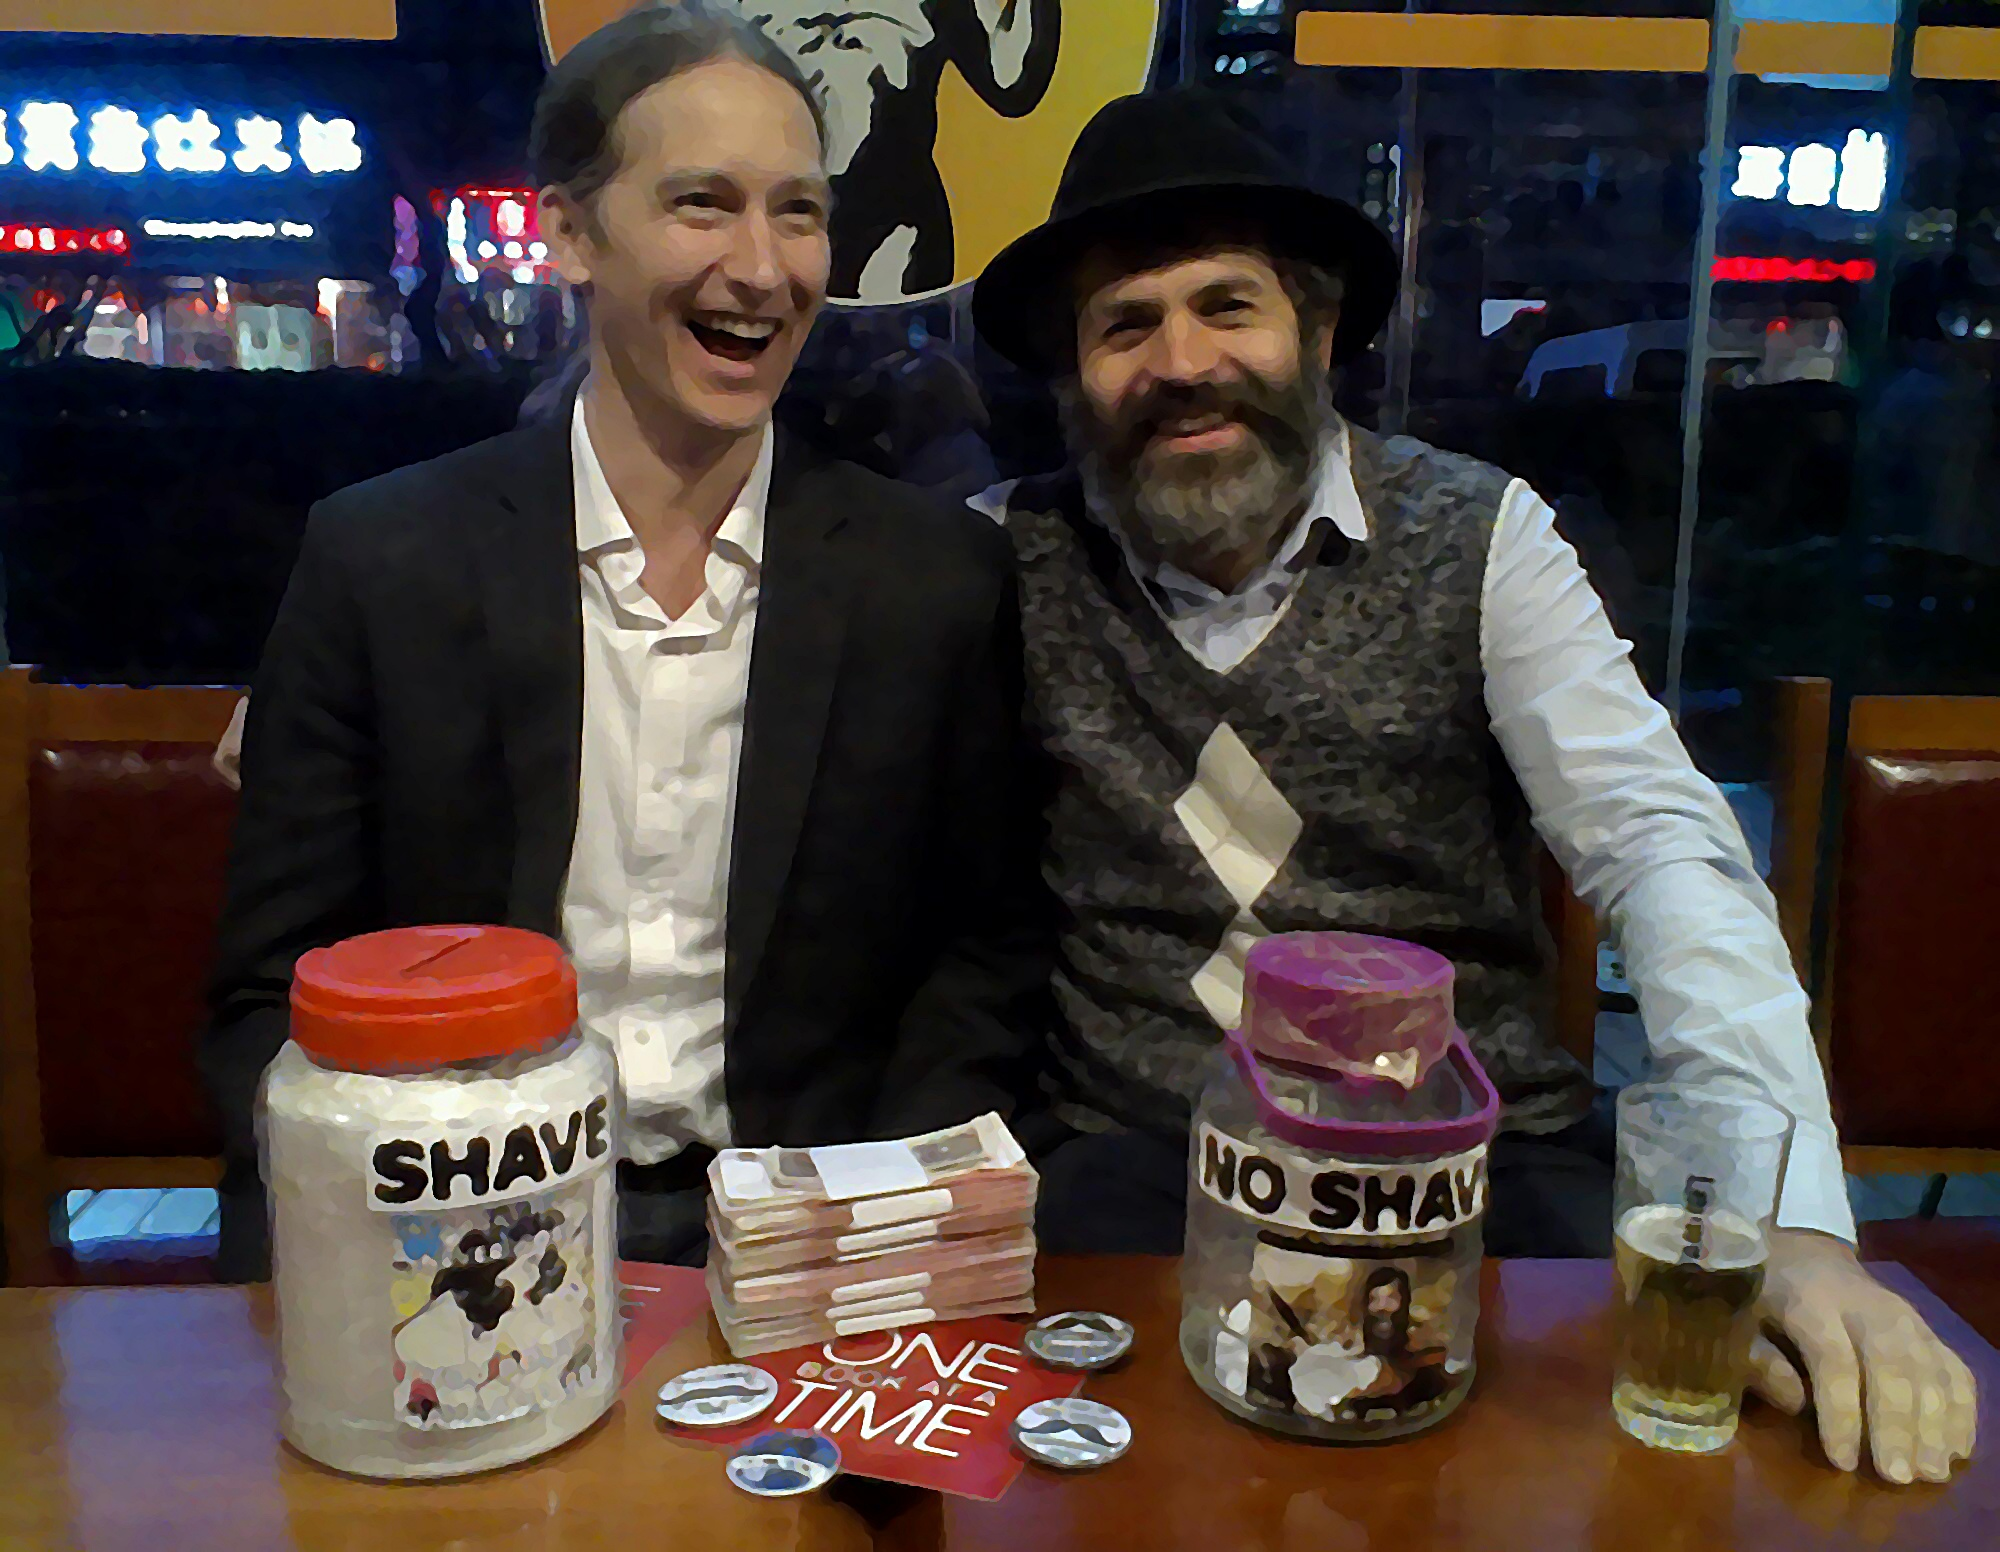 Maovember Cash Handover Tom Stader Library Project Beer Mania Paddy O'Shea's 2